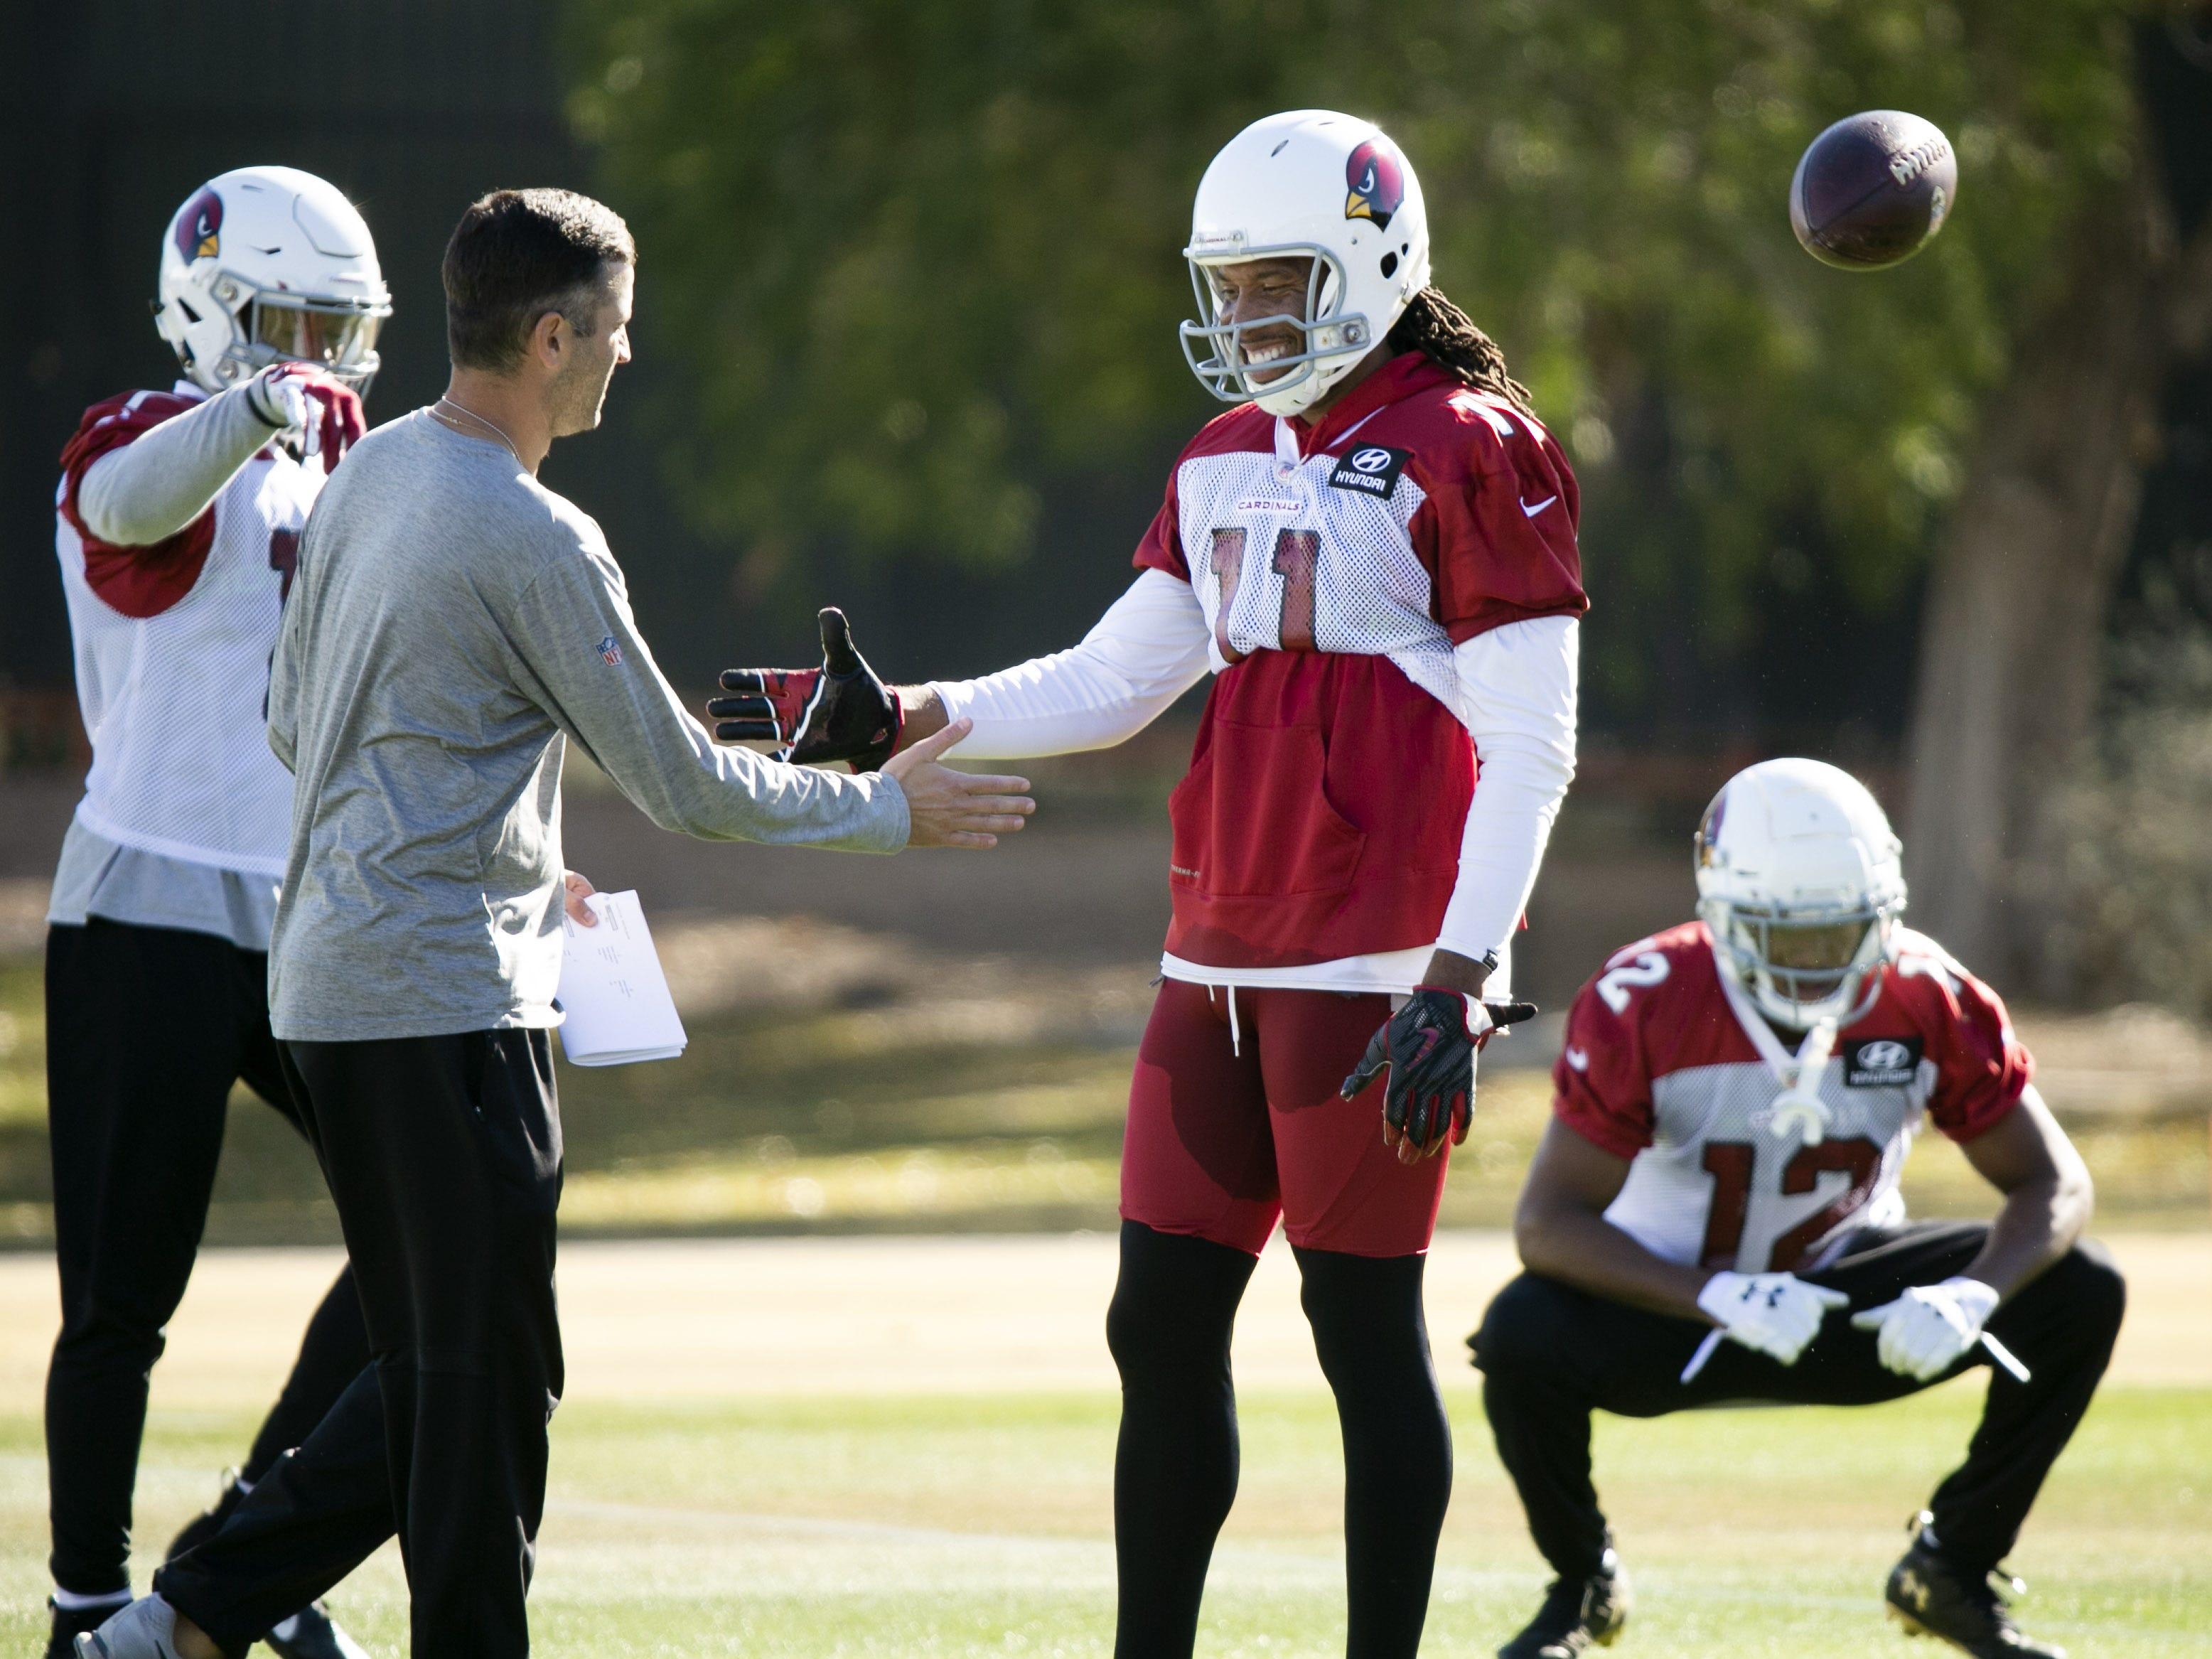 Cardinals wide receiver Larry Fitzgerald shakes hands with Cardinals wide receivers coach Kevin Garver during a practice at the Cardinals training facility in Tempe on Thursday, December 27, 2018.